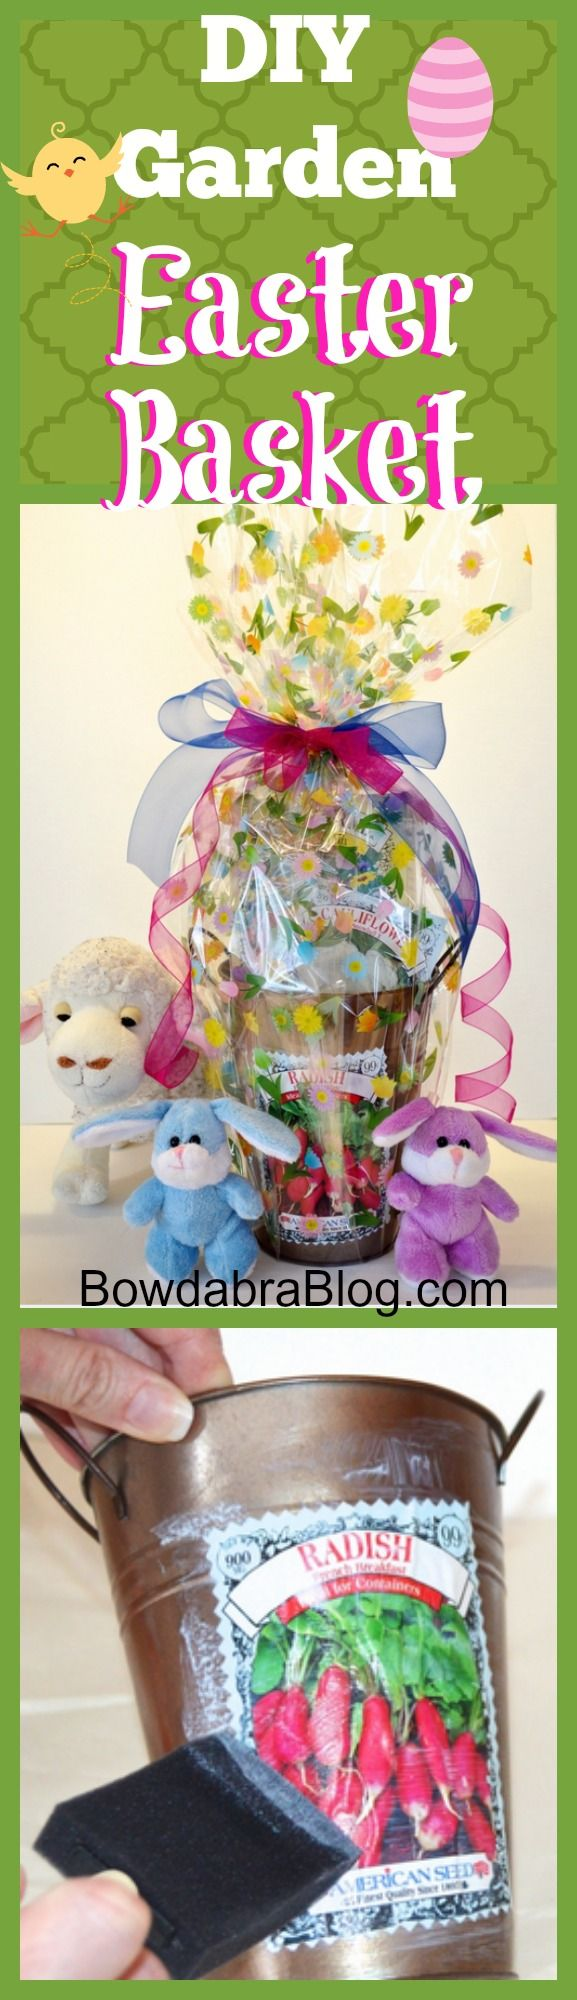 How To Make An Inexpensive Garden Easter Basket Diy Easter Basket Garden Easter Basket Easter Basket Diy Easter Baskets